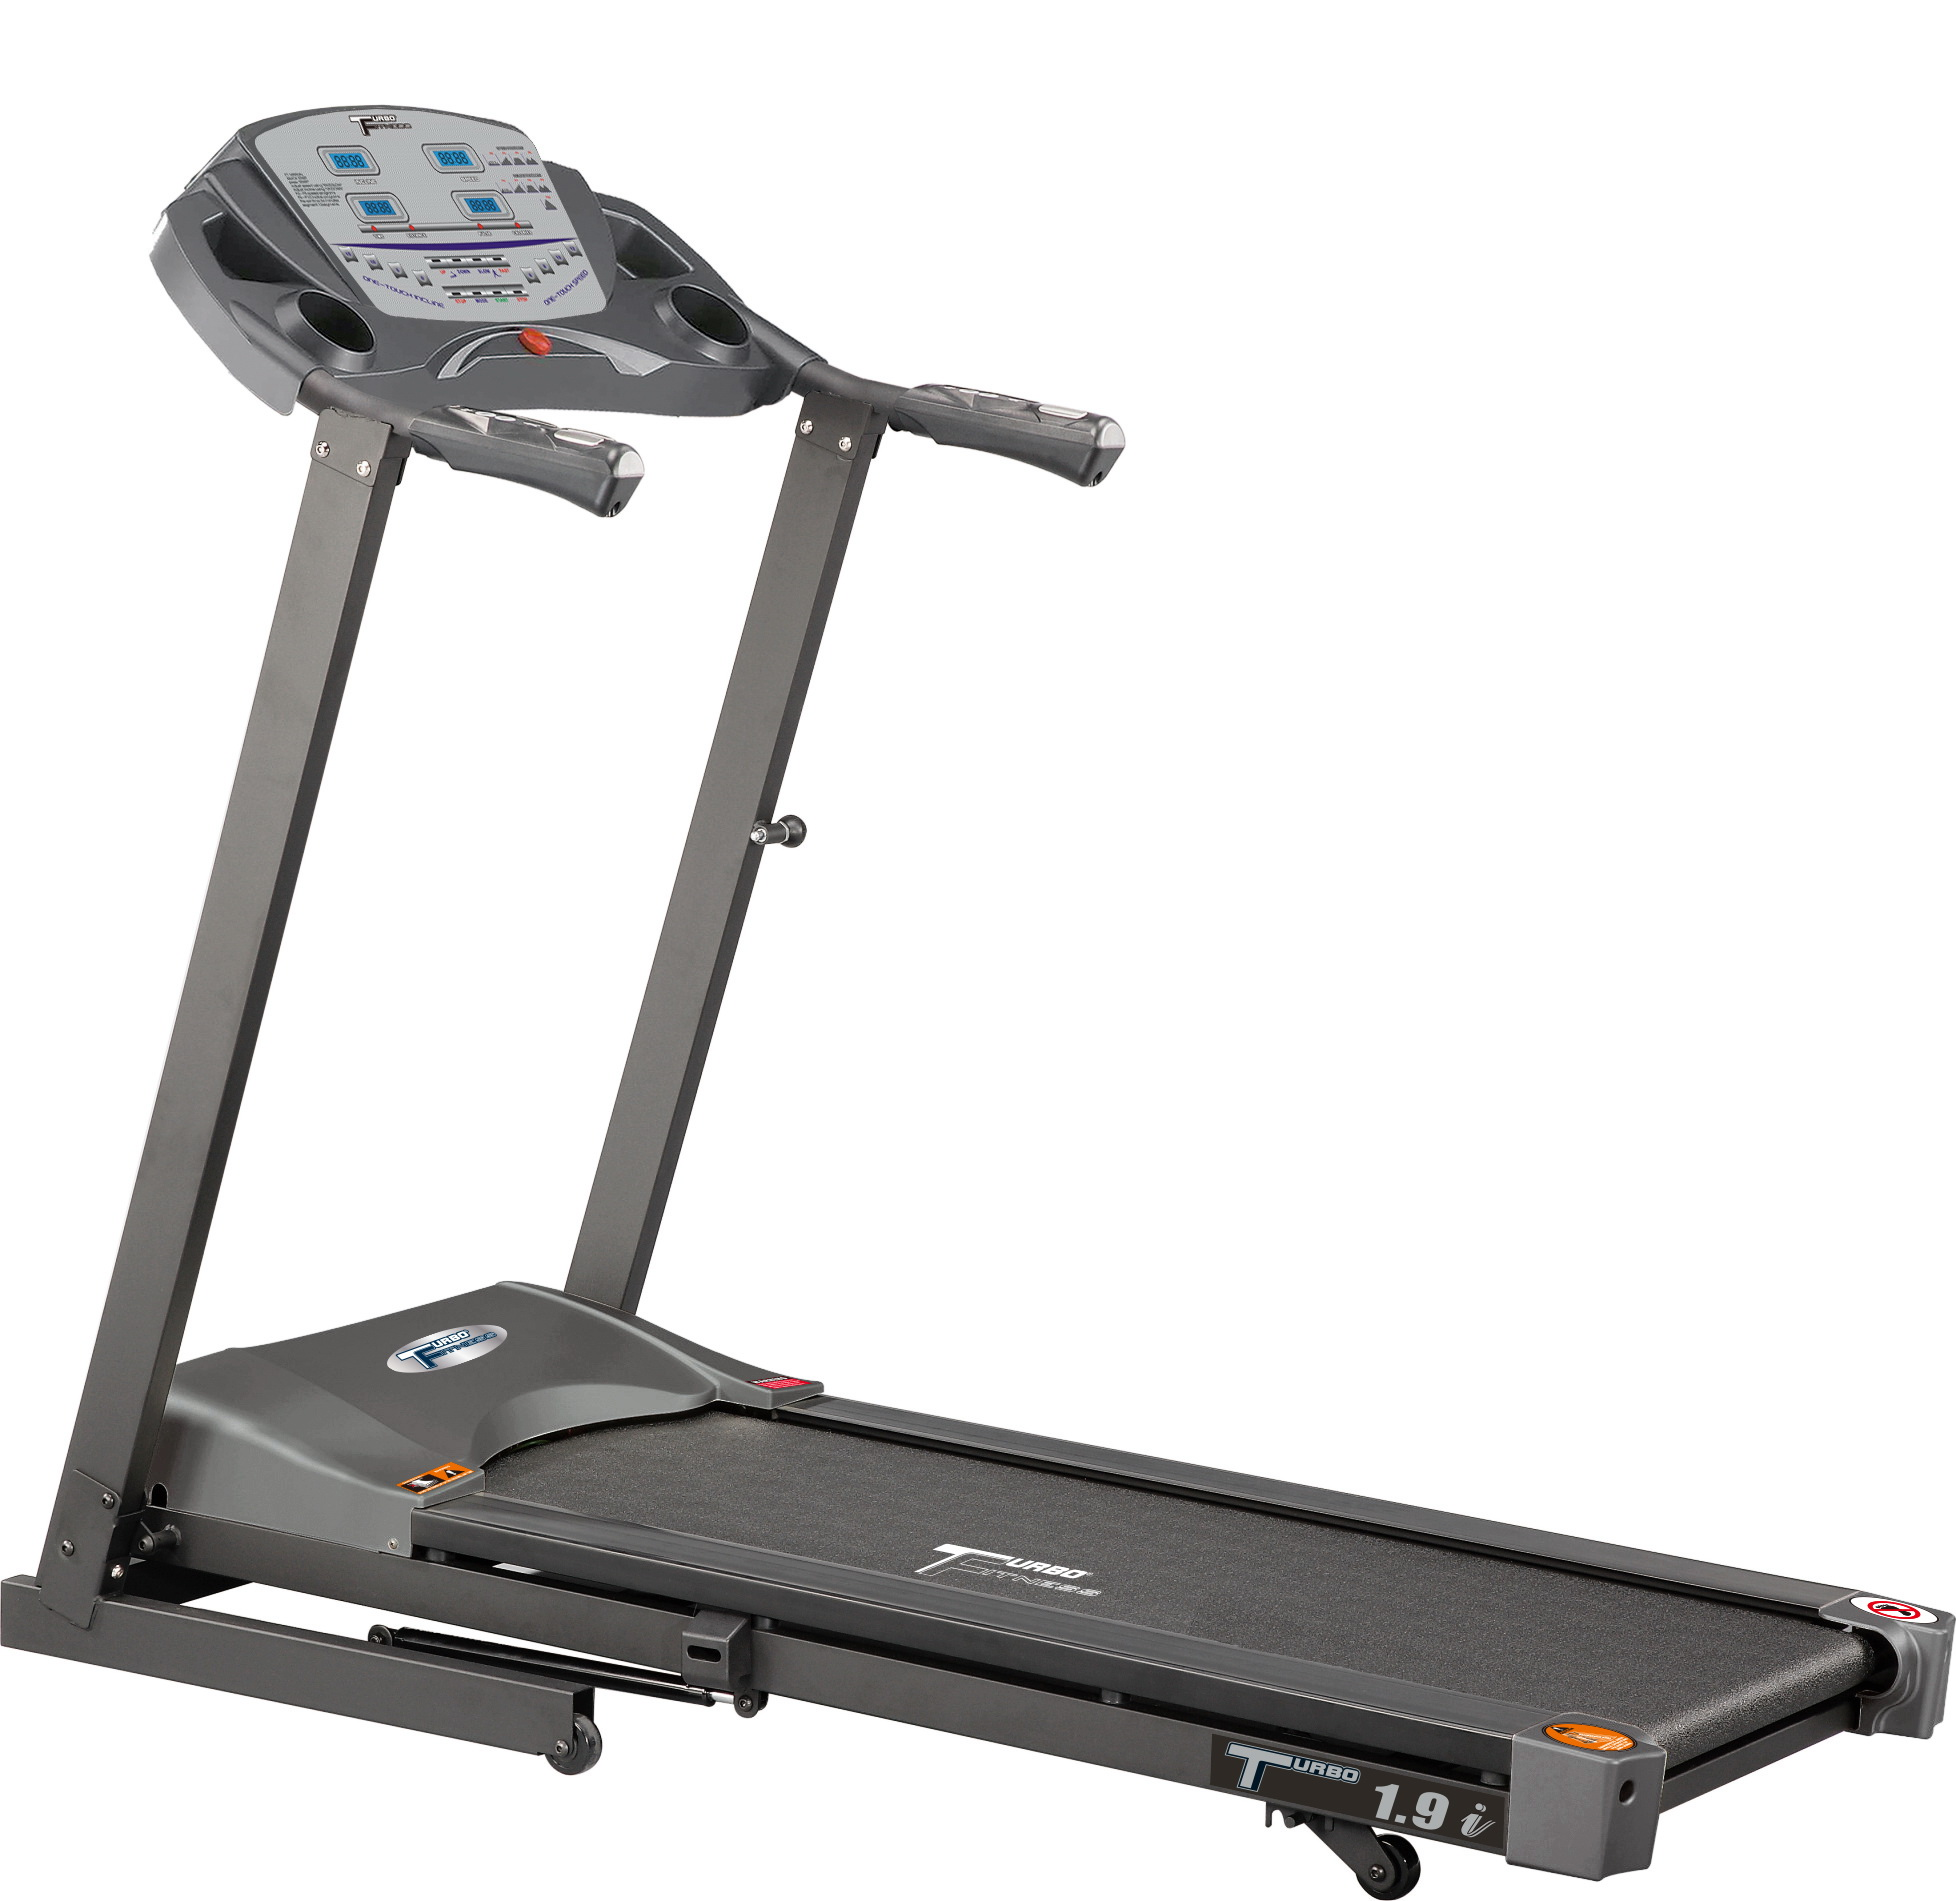 TURBO FITNESS T1.9i TREADMILL 3 MONTHS HIRE/BUY $299